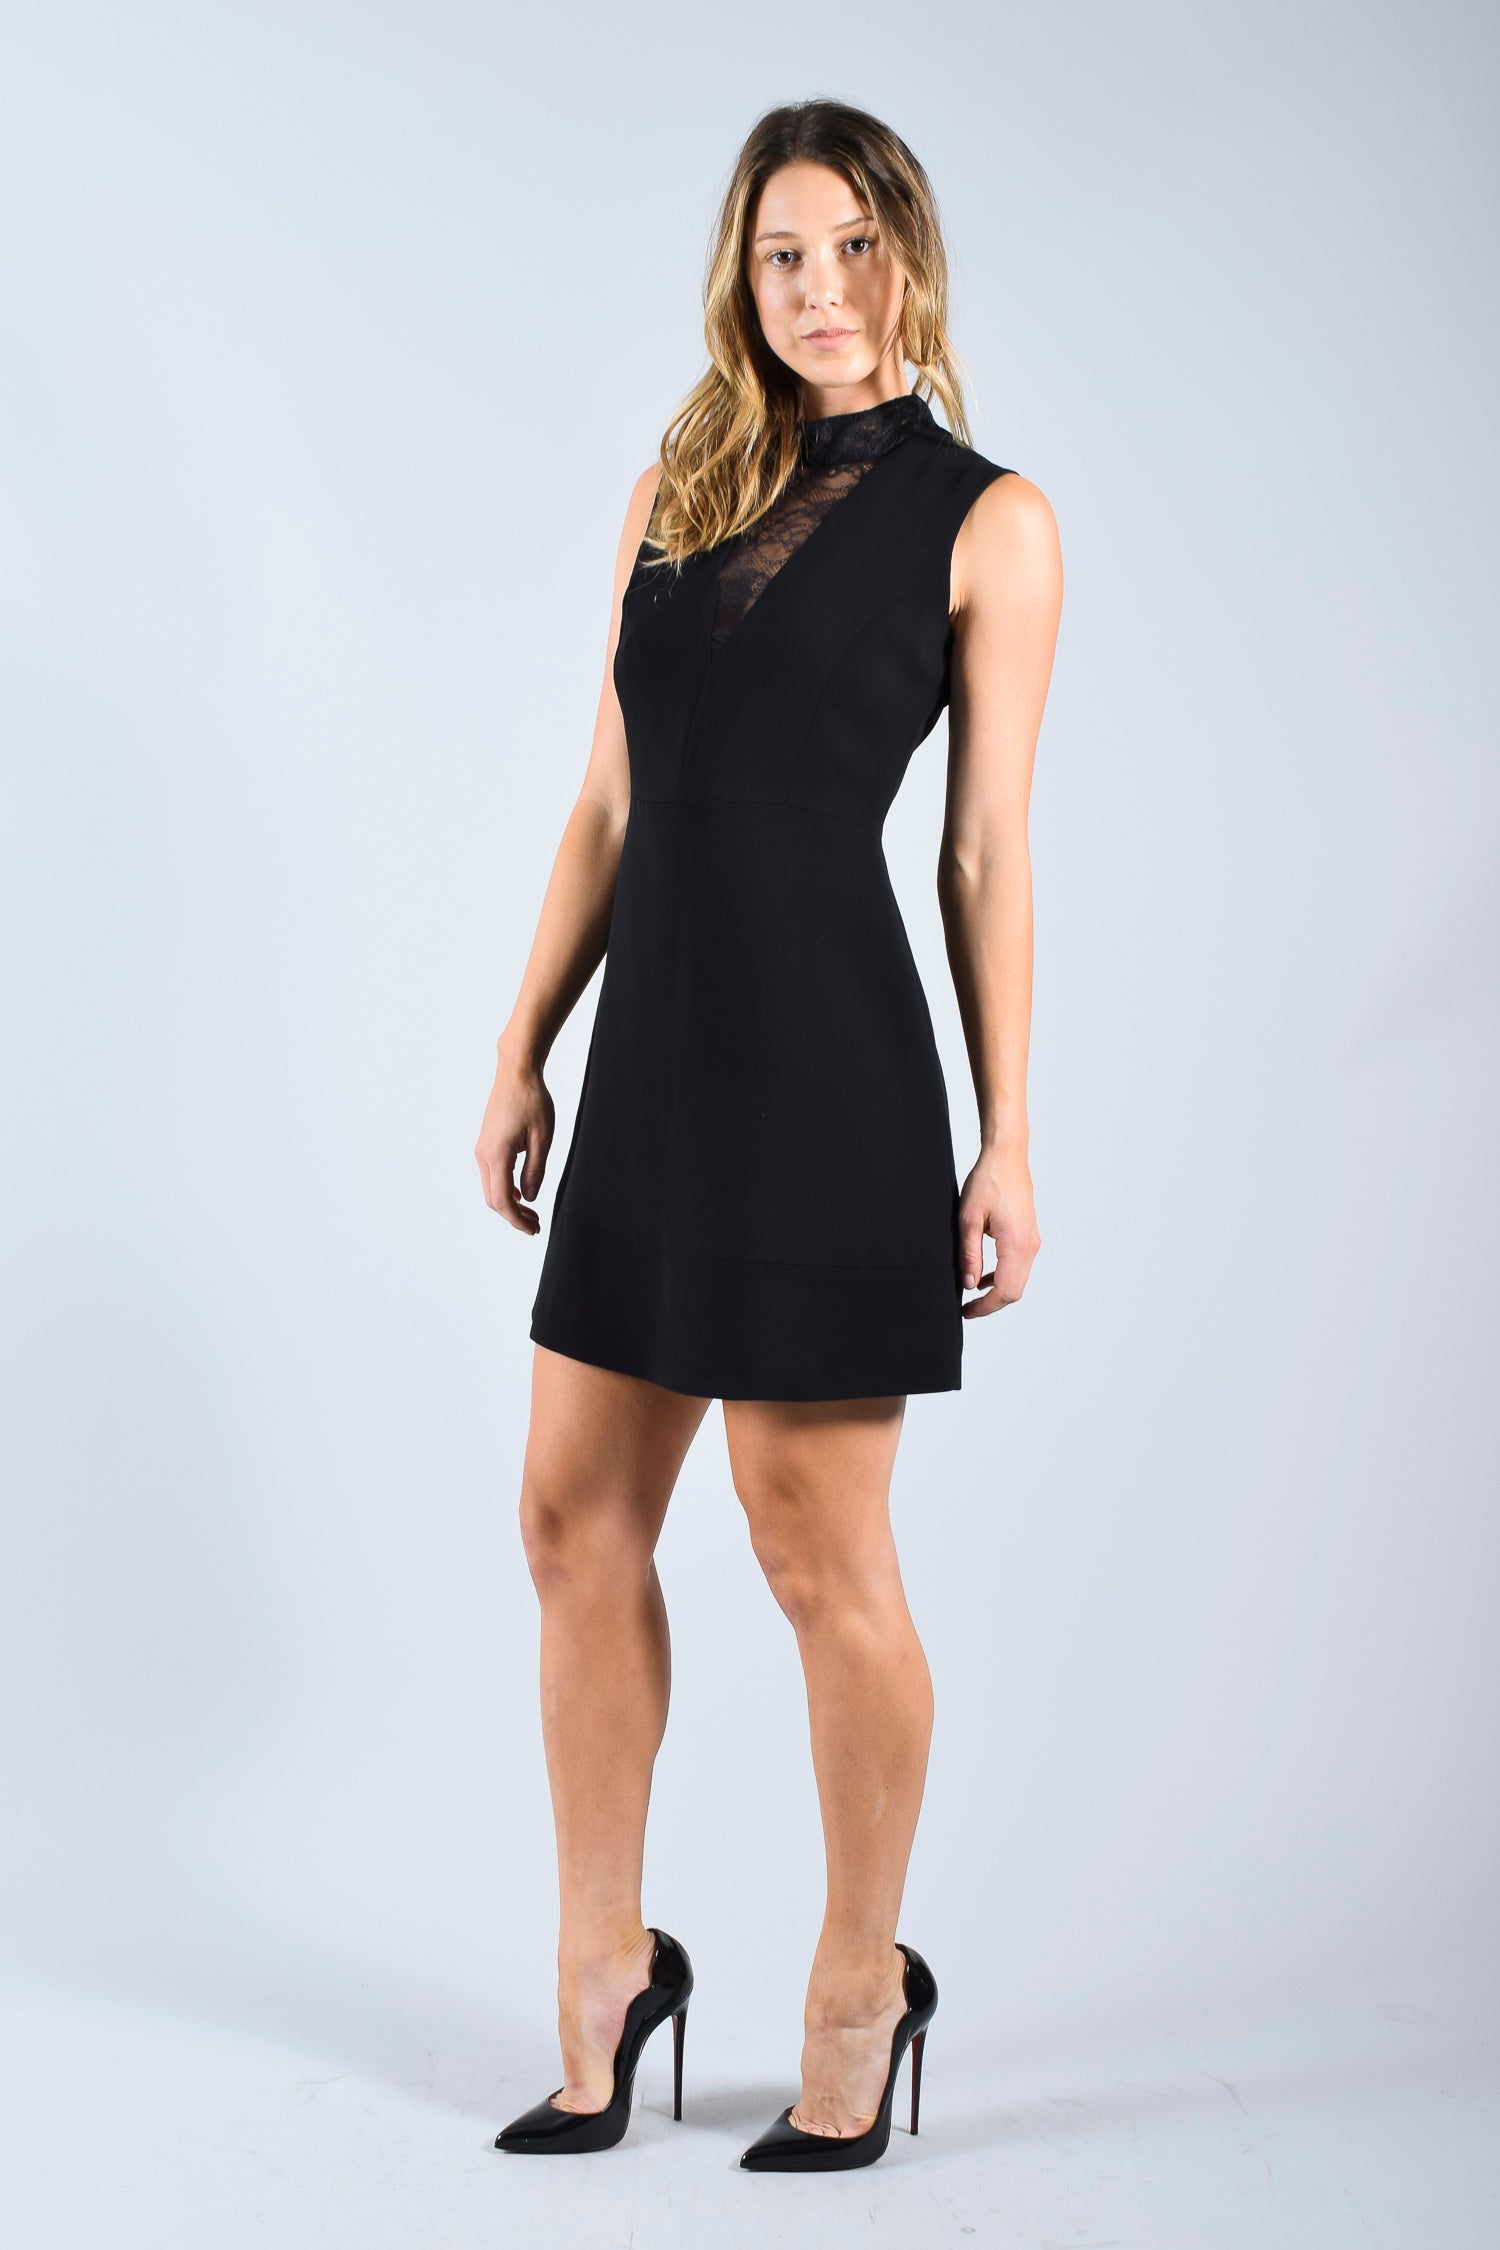 Sandro Black Sleeveless dress with Lace V-Neck